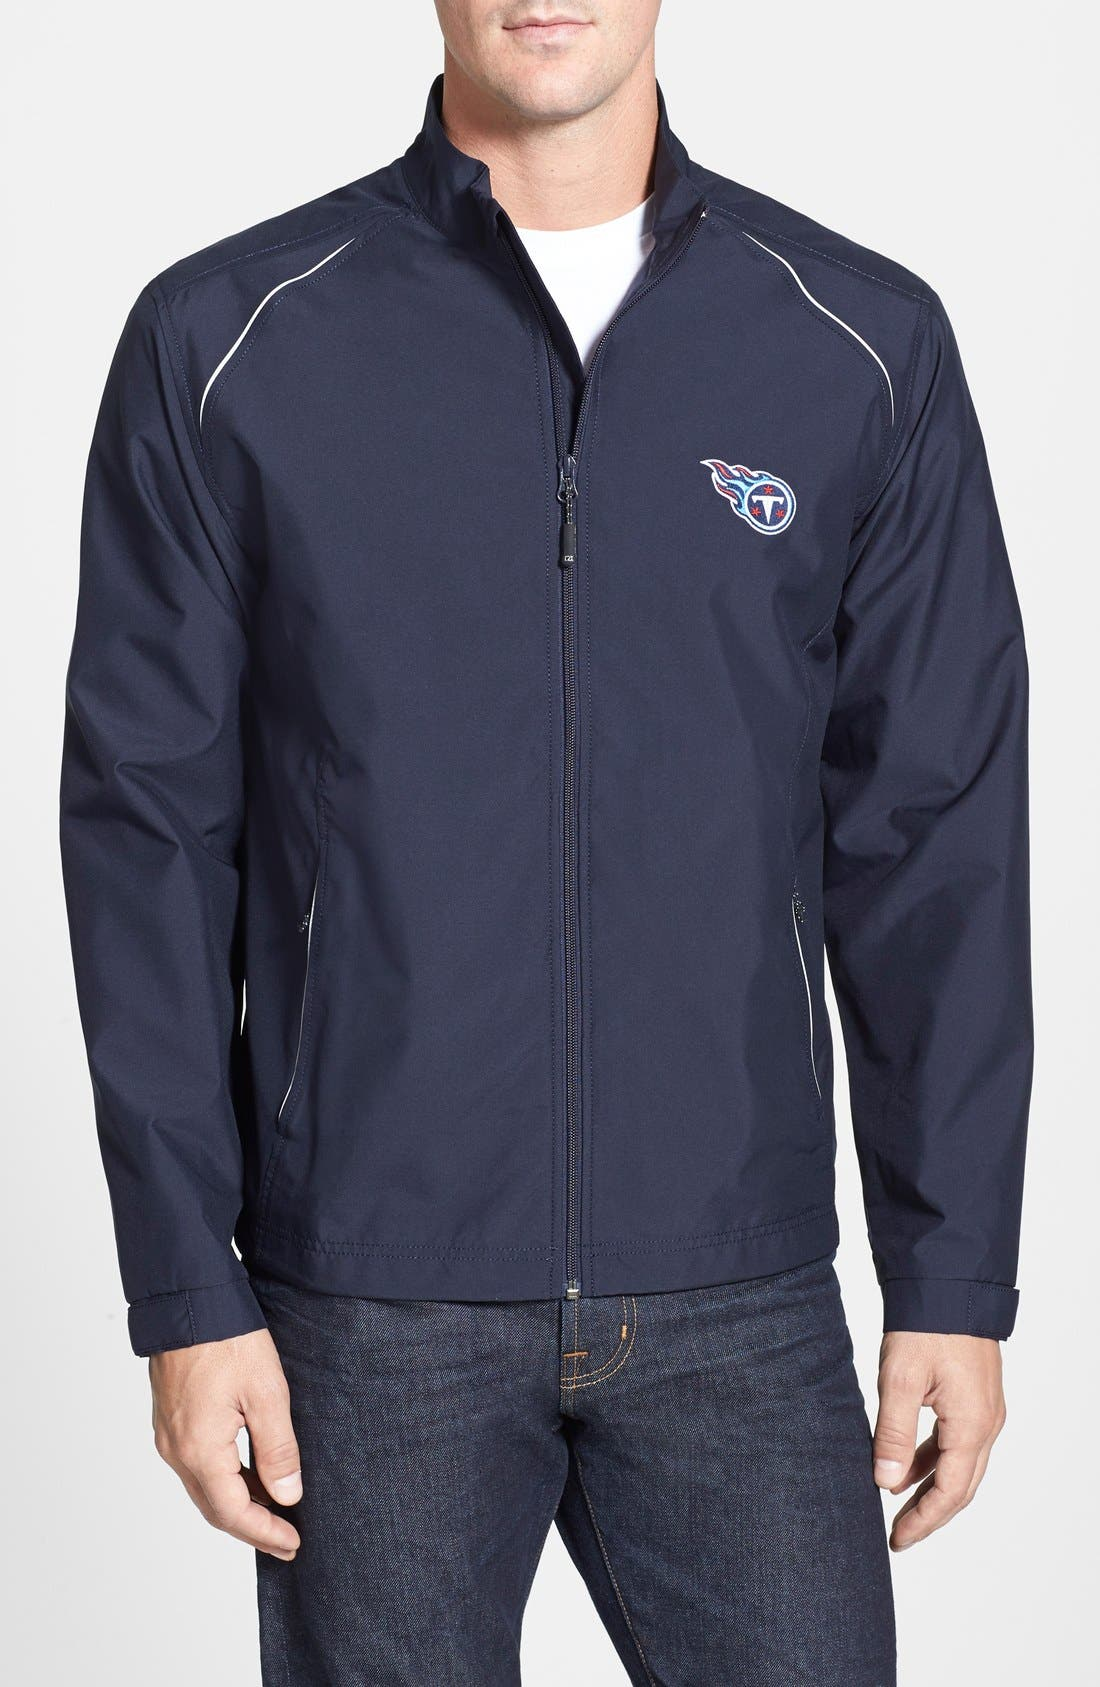 Tennessee Titans - Beacon WeatherTec Wind & Water Resistant Jacket,                             Main thumbnail 1, color,                             420